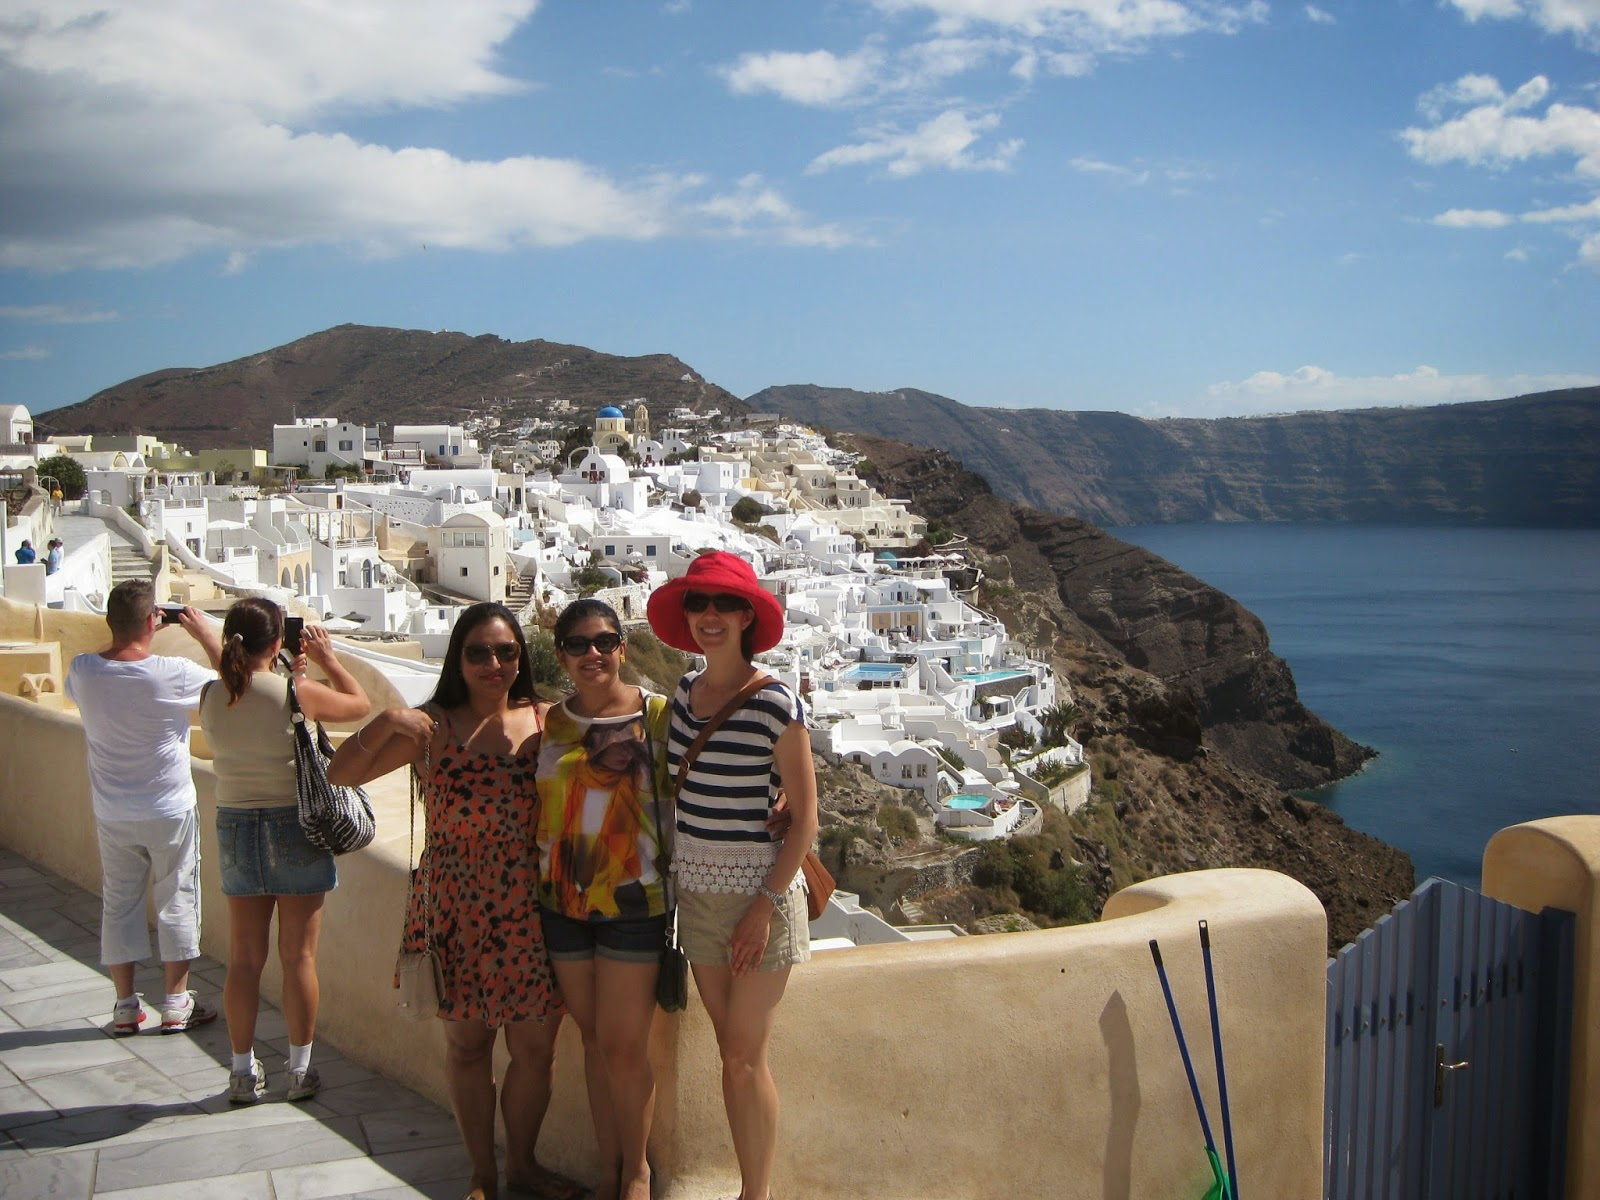 Santorini - We met up with Trisha & Abhi's friends Ratan & Roop